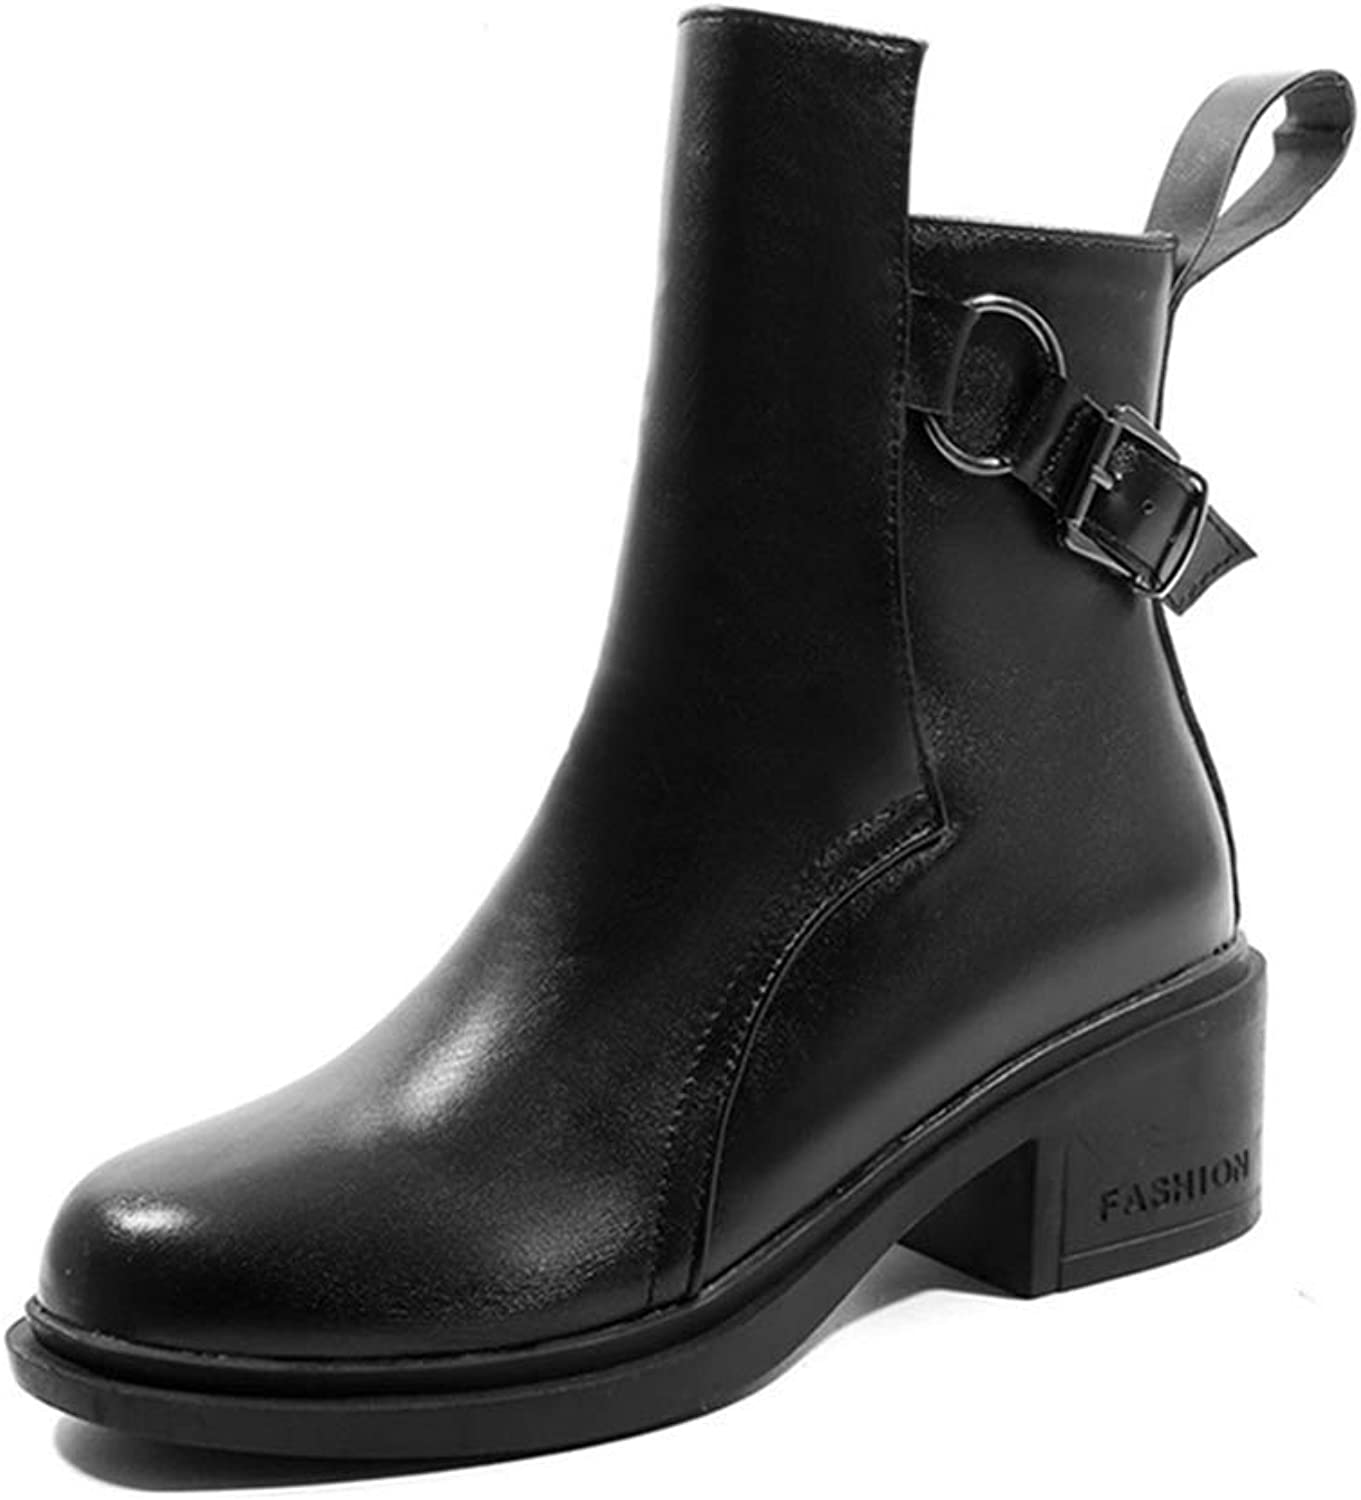 Fashion shoesbox Women's Chunky Martin Ankle Boots Buckle Round Toe Platform Slip On Booties Mid Heel Dress Short Boot